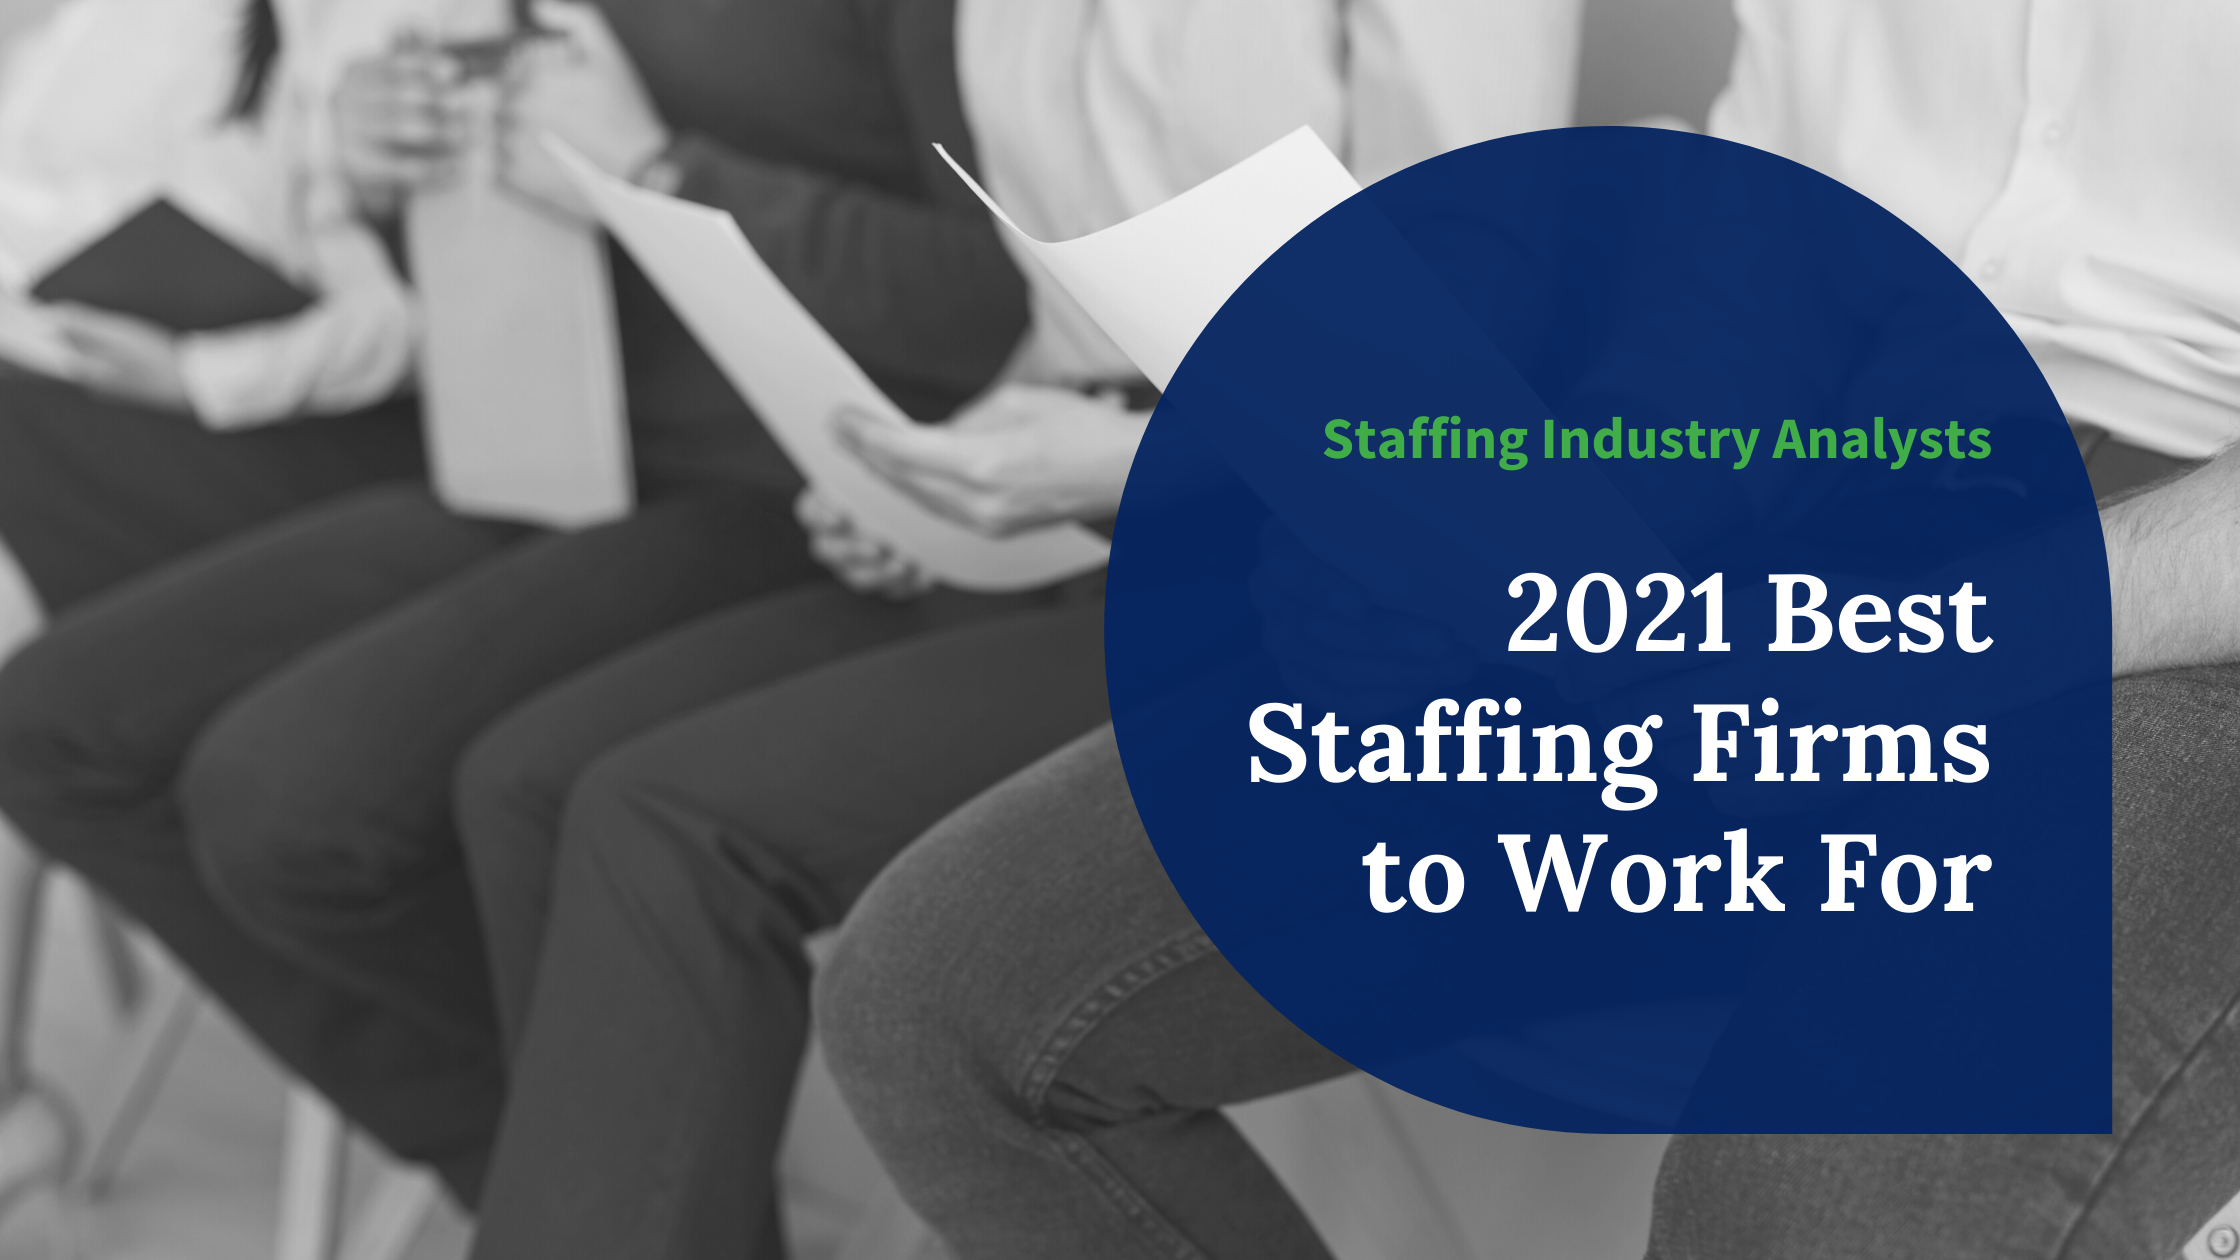 2021 SIA Best Staffing Firms to Work For